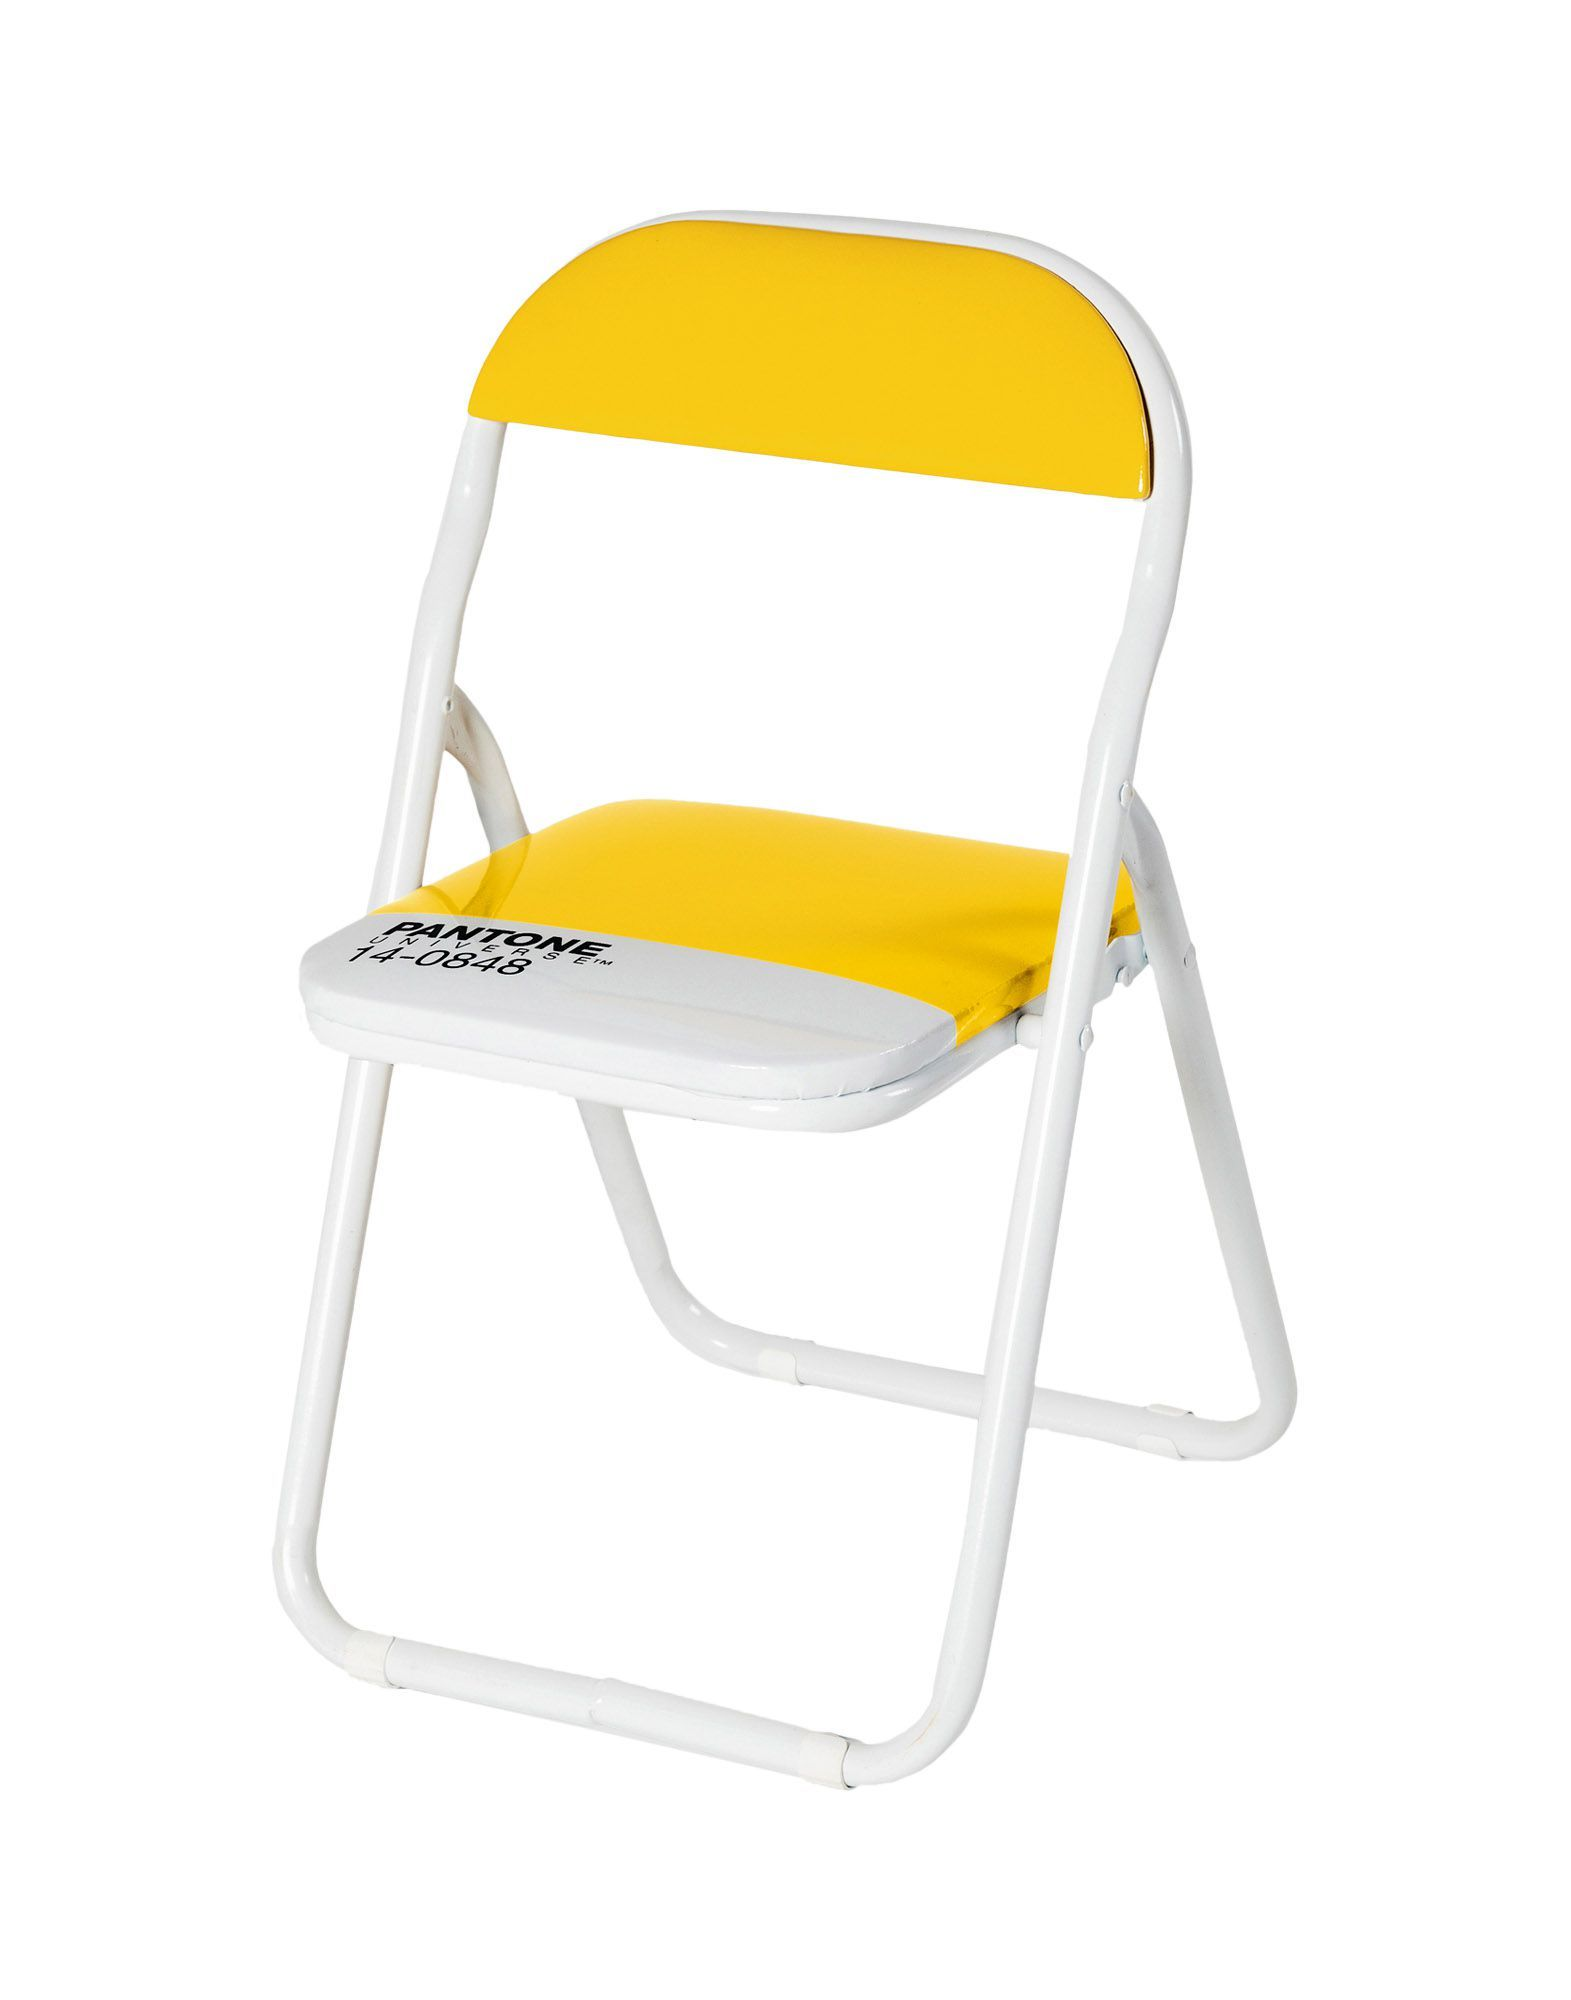 Pantone Chair Baby Pantone Chair Color Yellow They Call Me Mellow Silla